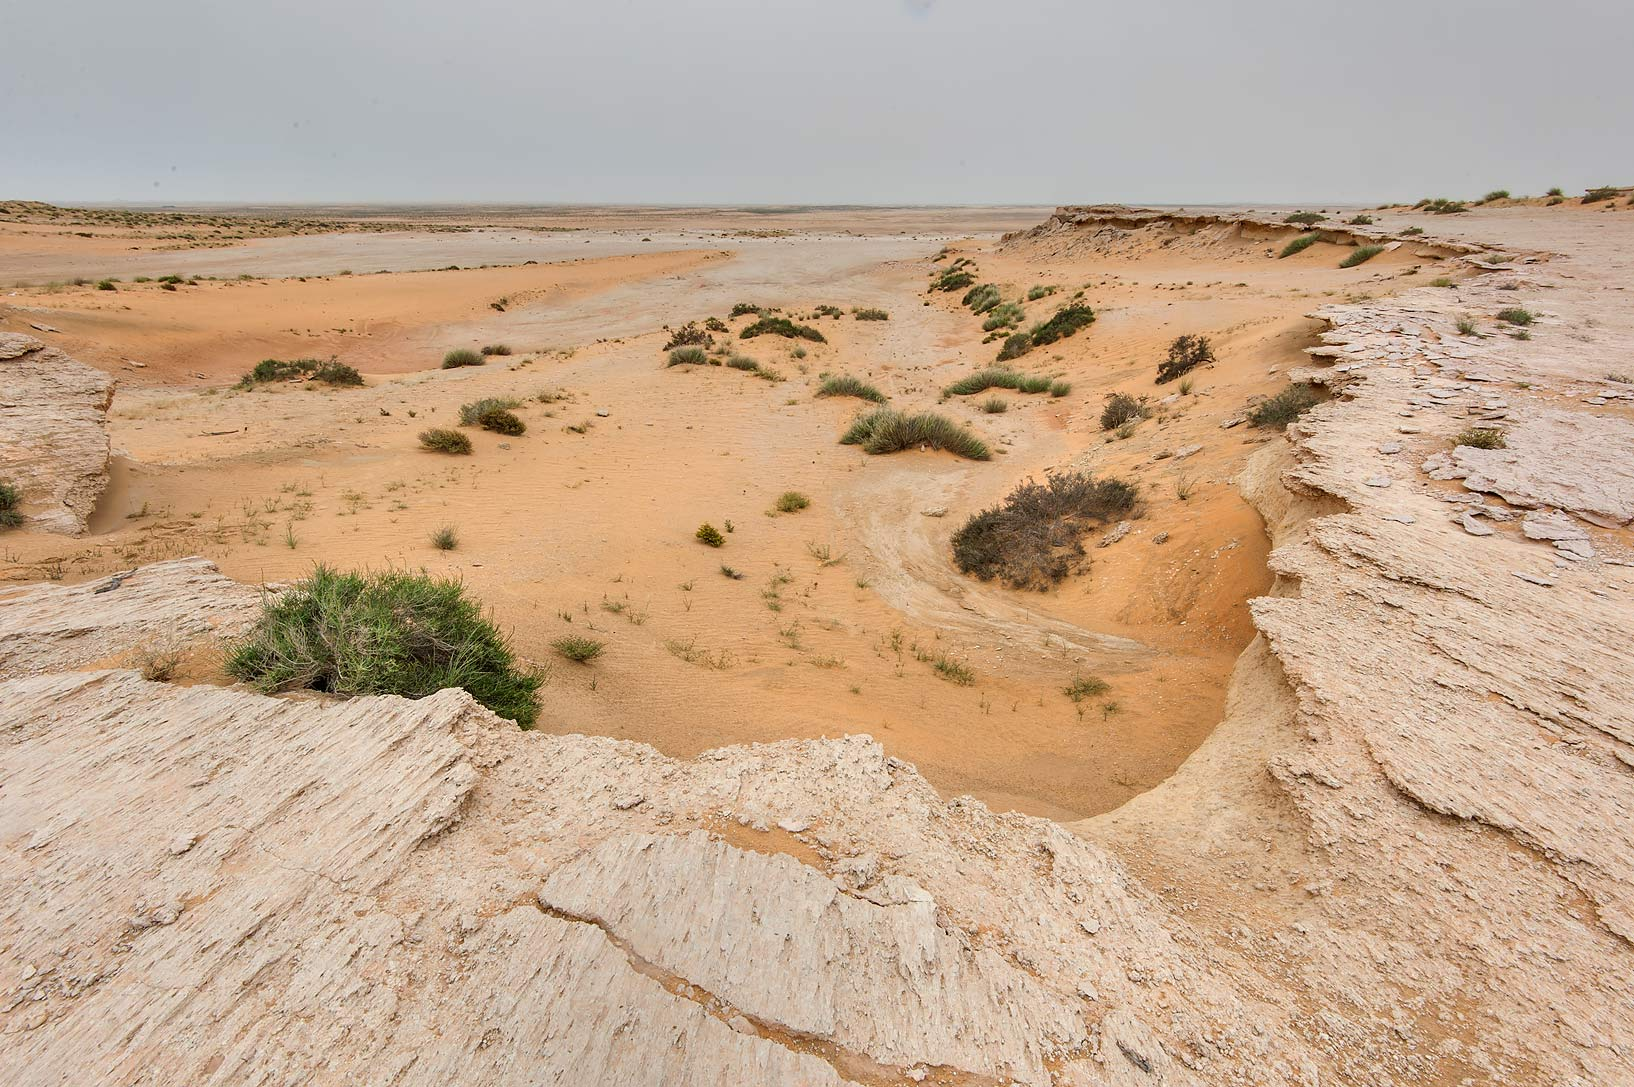 Washed out edge of limestone cliffs in Maszhabiya...Reserve near Abu Samra. Southern Qatar